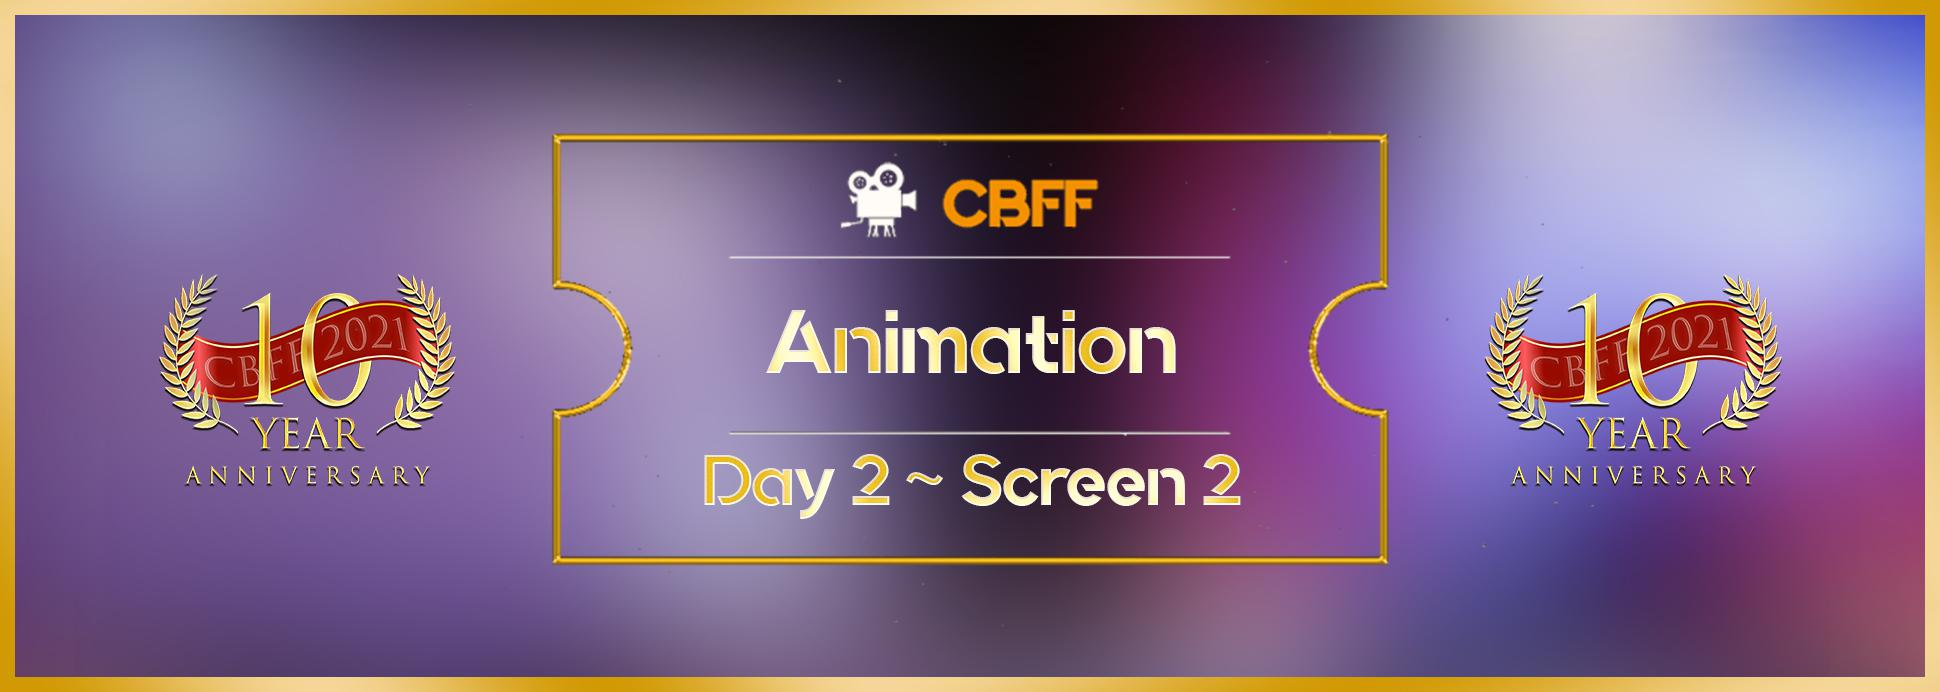 Day 2, Screen 2: Animations